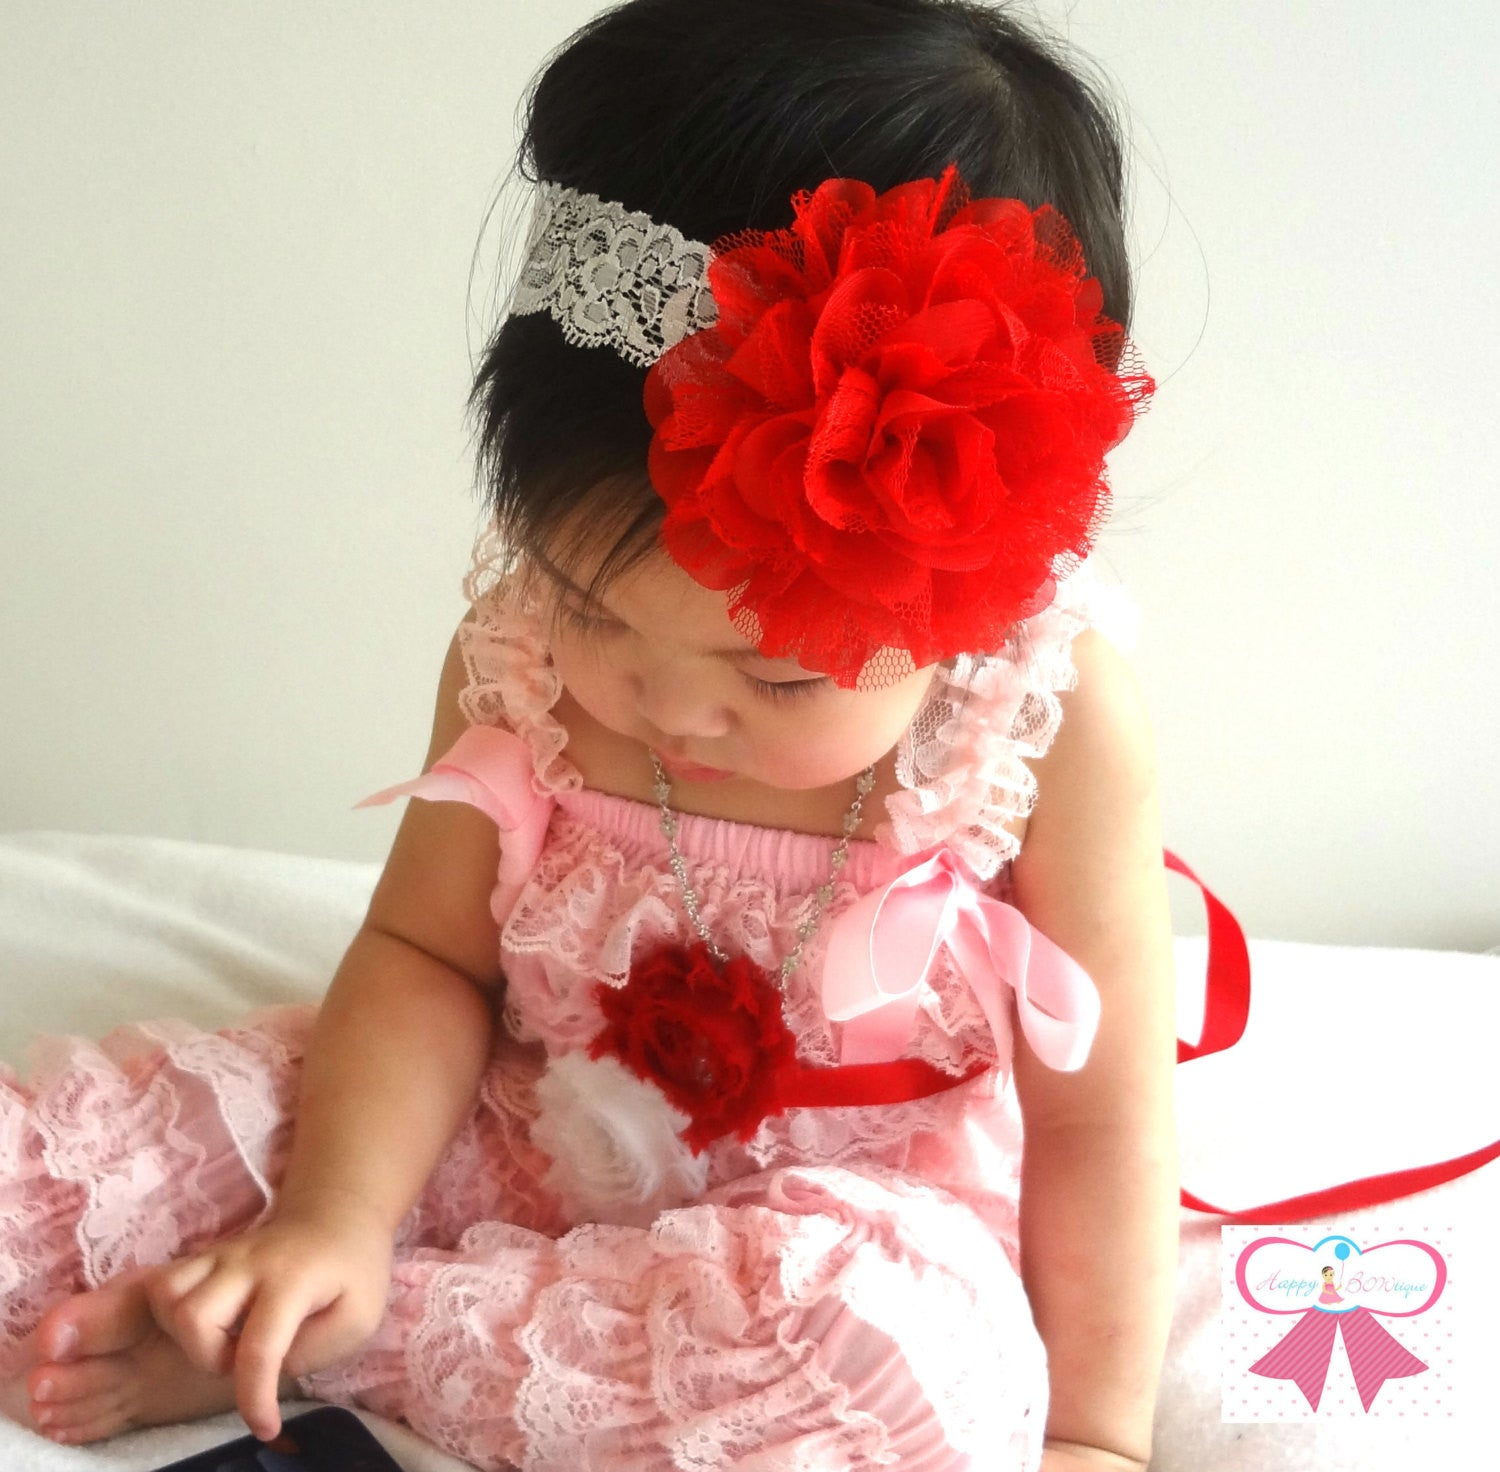 Christmas Headband For Baby Girl.Large Red And Green Chiffon Lace Flower Headband Christmas Headband